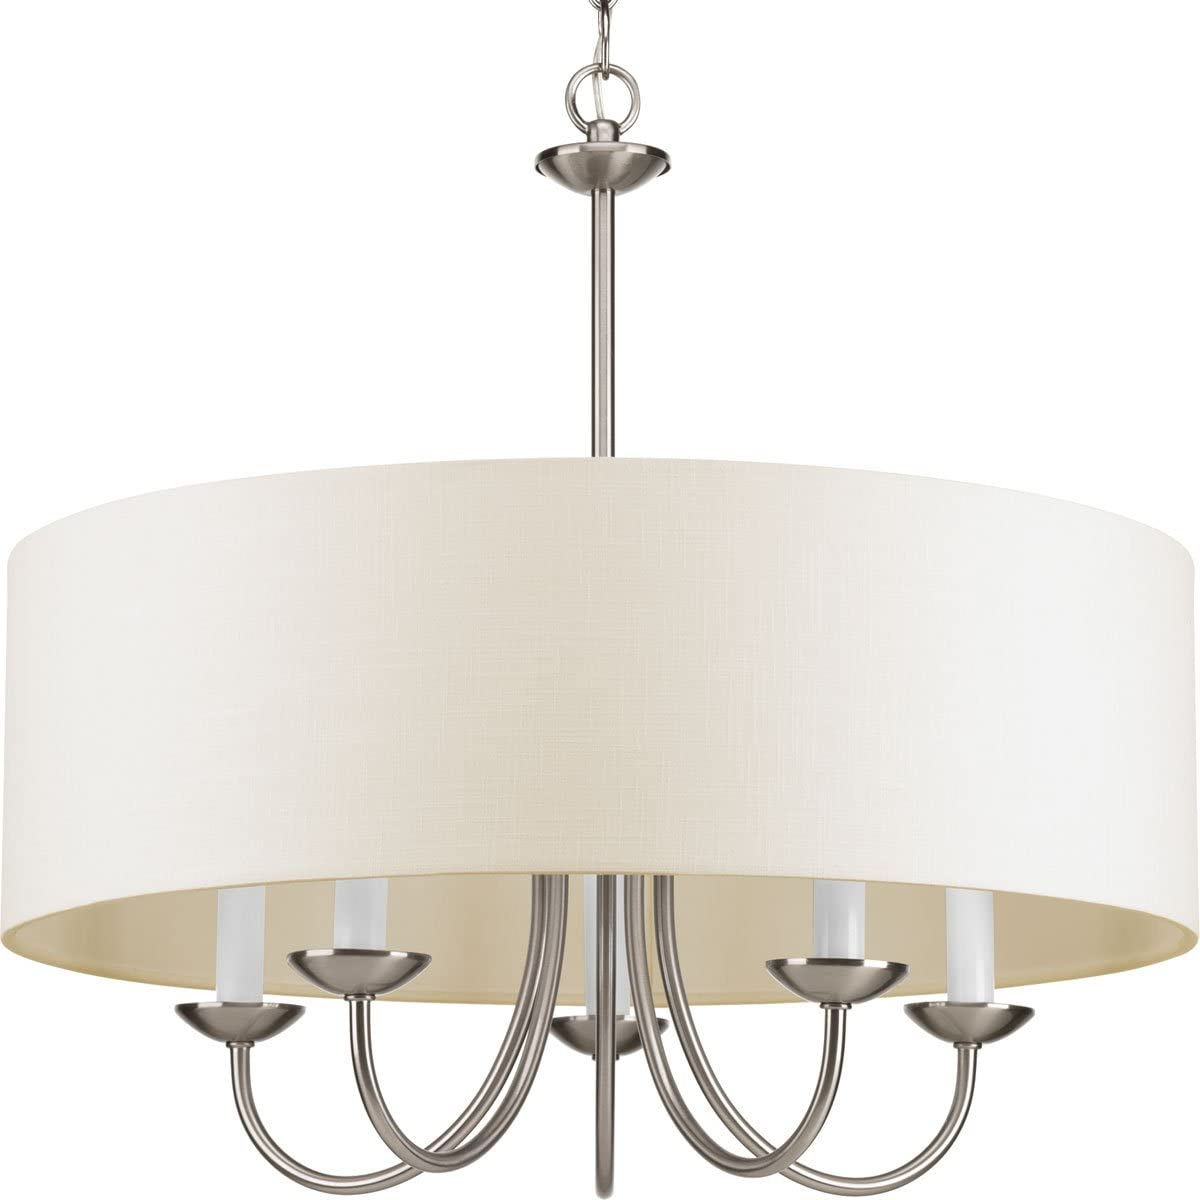 Progress Lighting P4217-09 5-Lt. Chain Hung Fixture with Off-white linen fabric shade